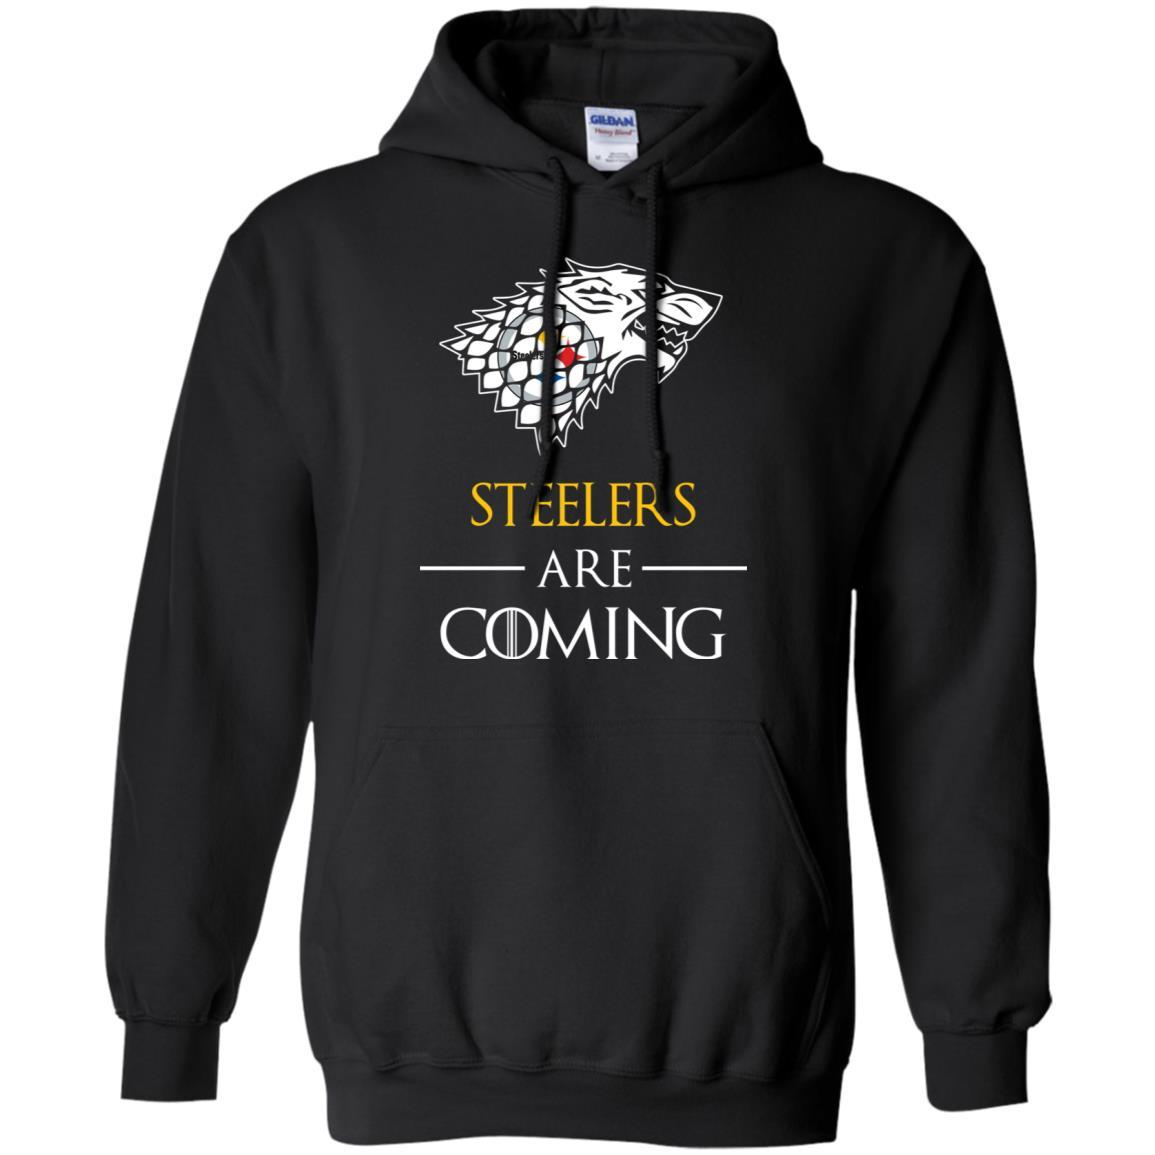 Pittsburgh Steelers stark house are coming funny Game of Thrones shirt Hoodie